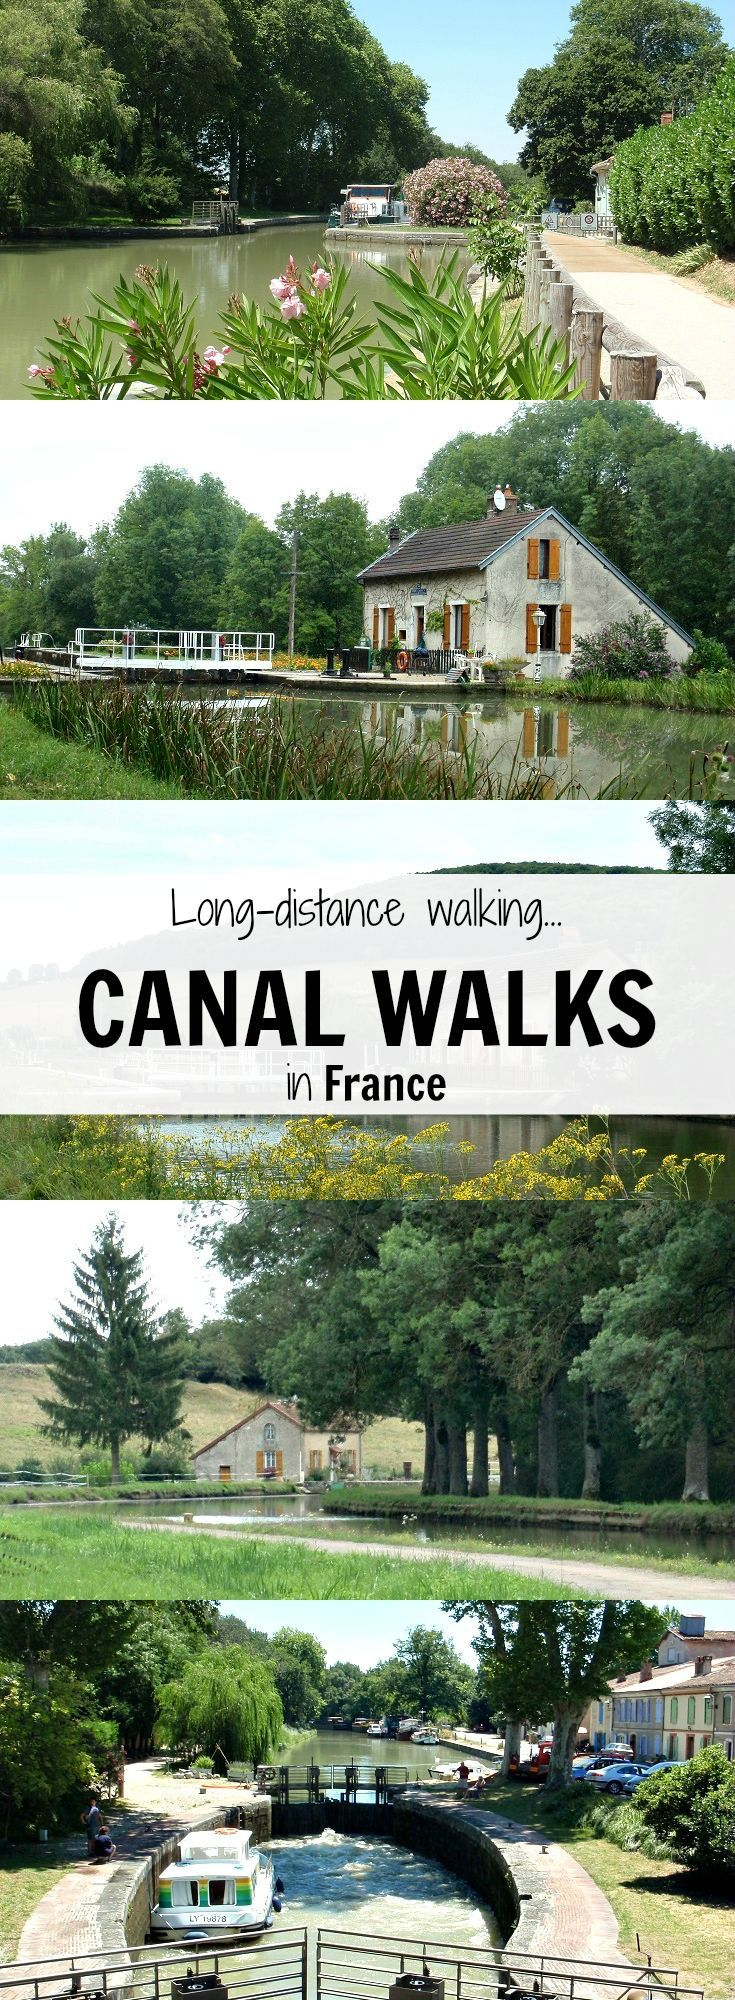 Discover the canals of France on a long-distance walk